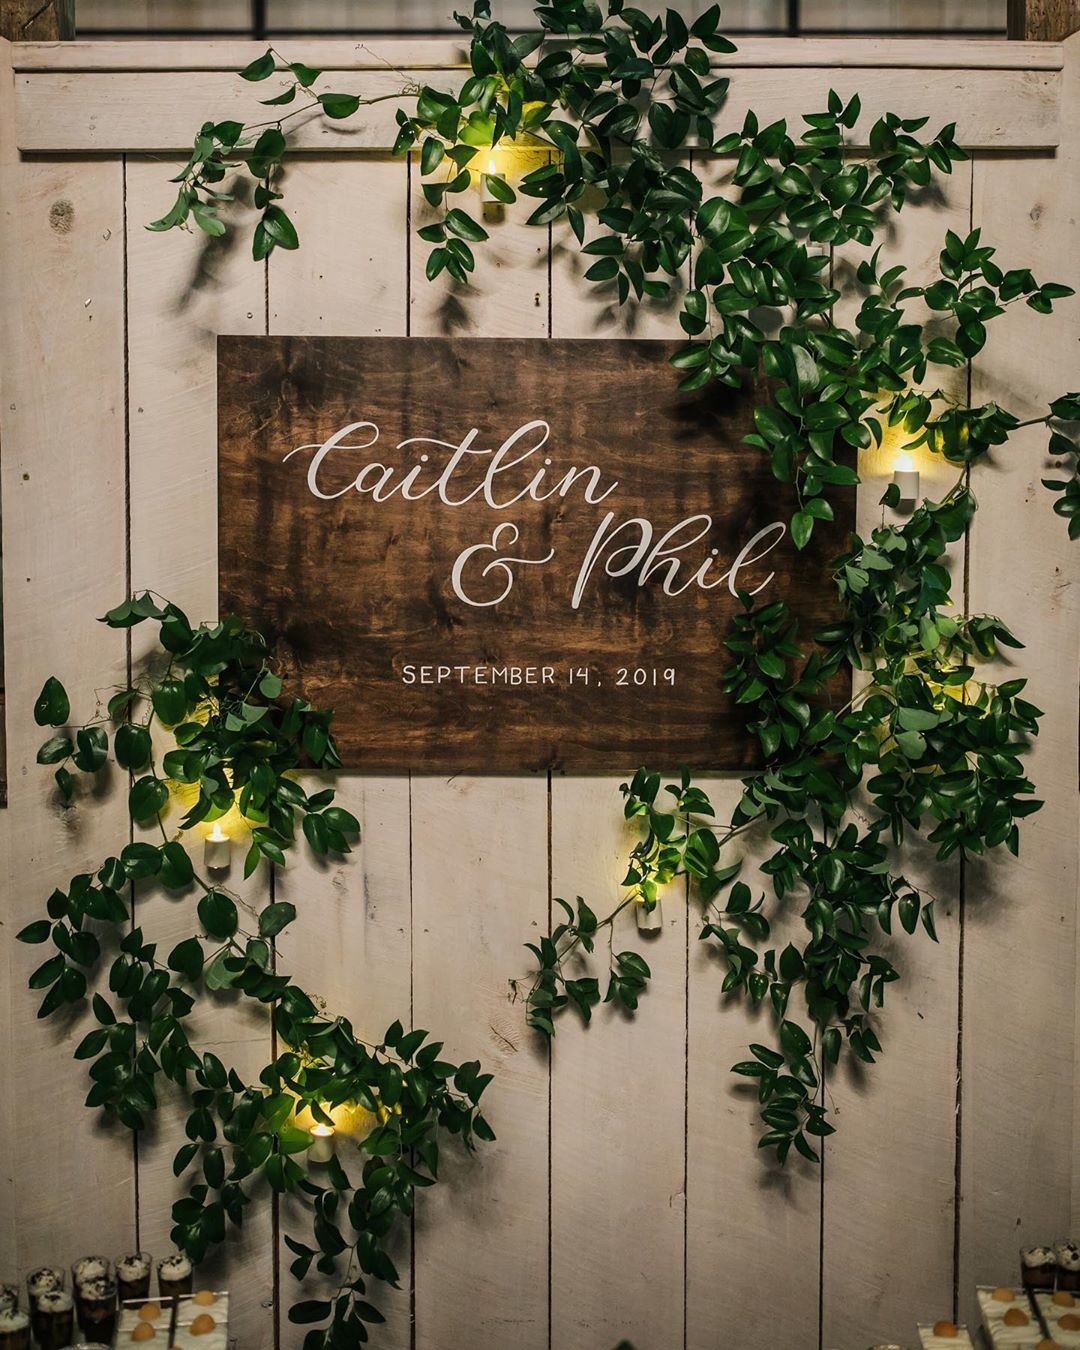 Caitlin & Philip has such a beautiful wedding! Here are a few details from the reception planned by